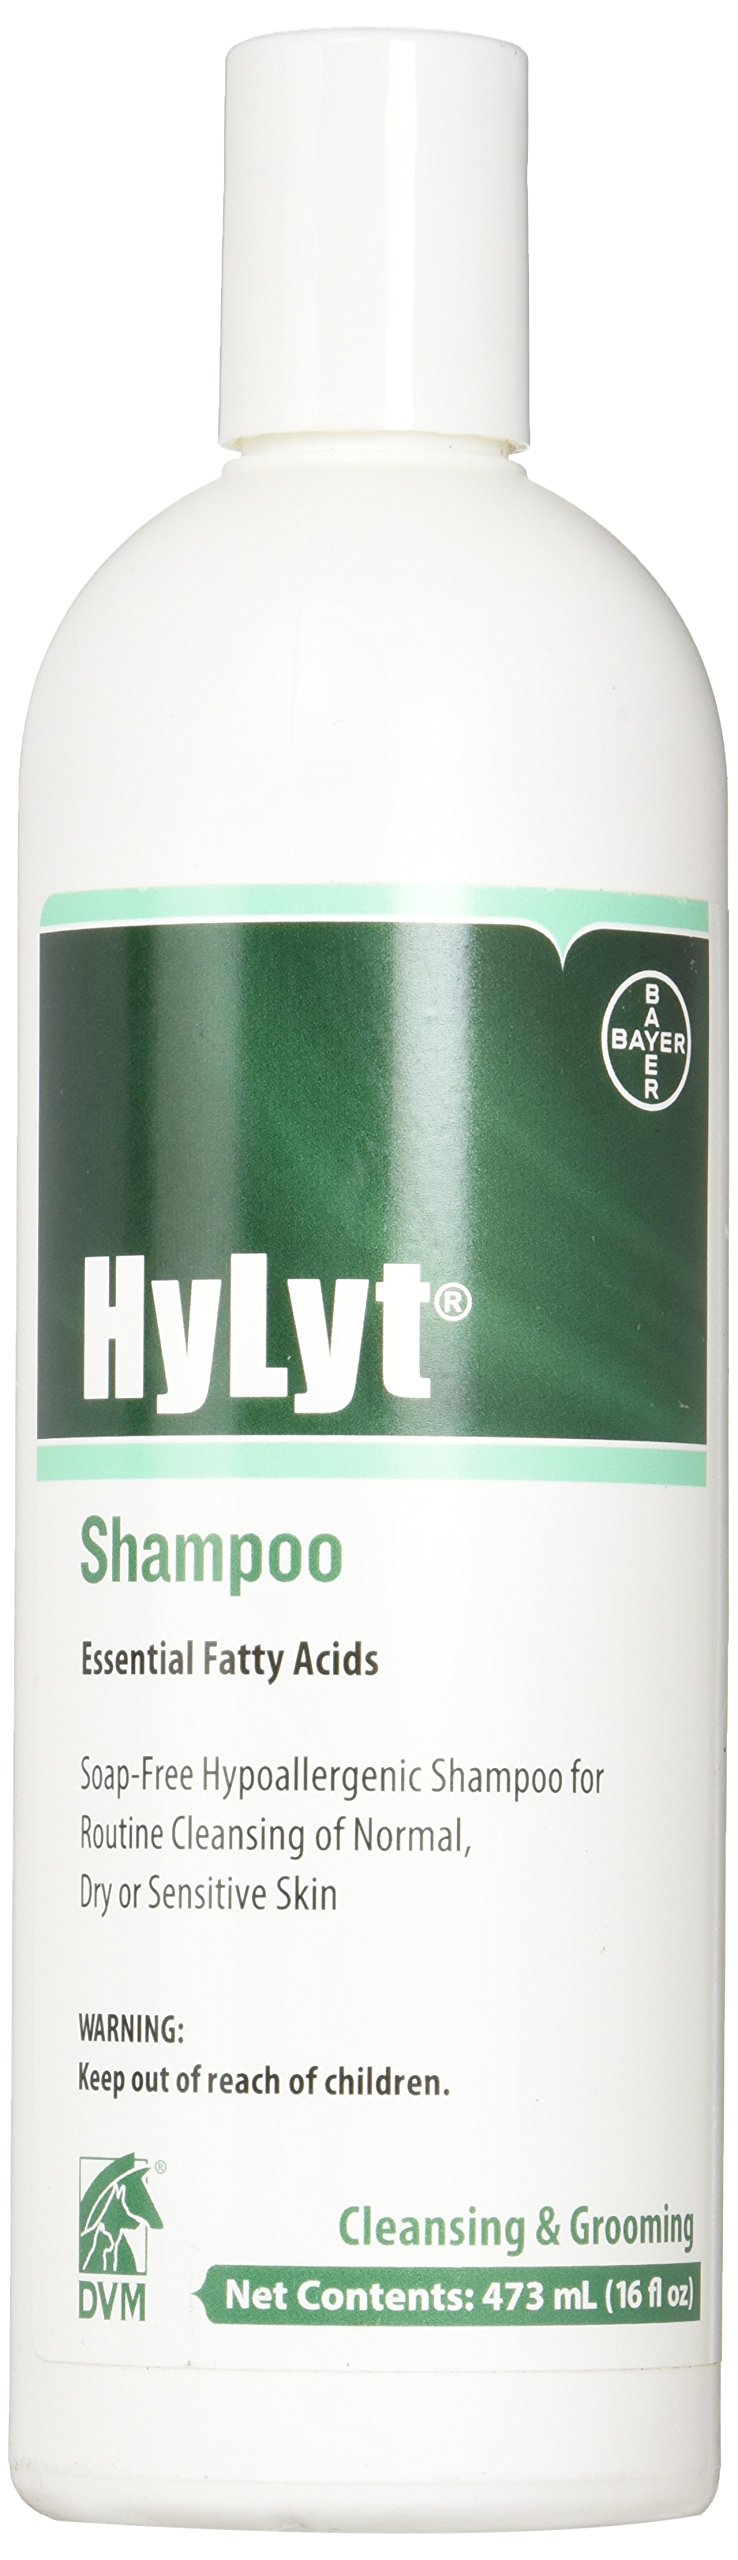 DVM PHARMACEUTICALS Hylyt Shampoo for Pets, 16-Ounce